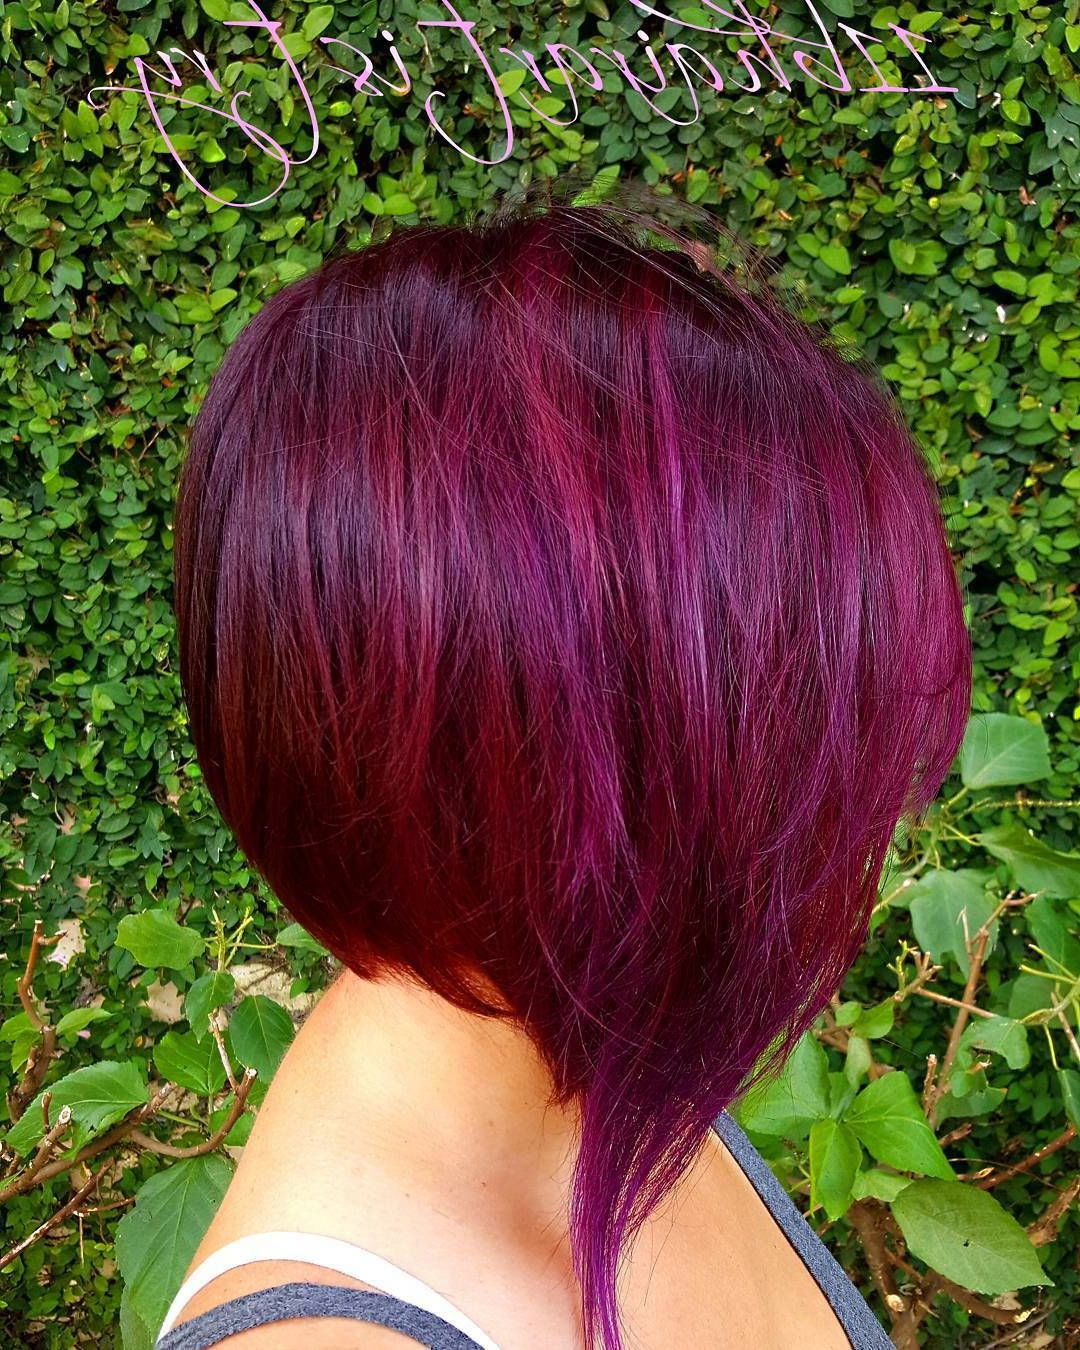 Well Known Bright Red Bob Hairstyles In Pin On Glam Hair Color (Gallery 10 of 20)